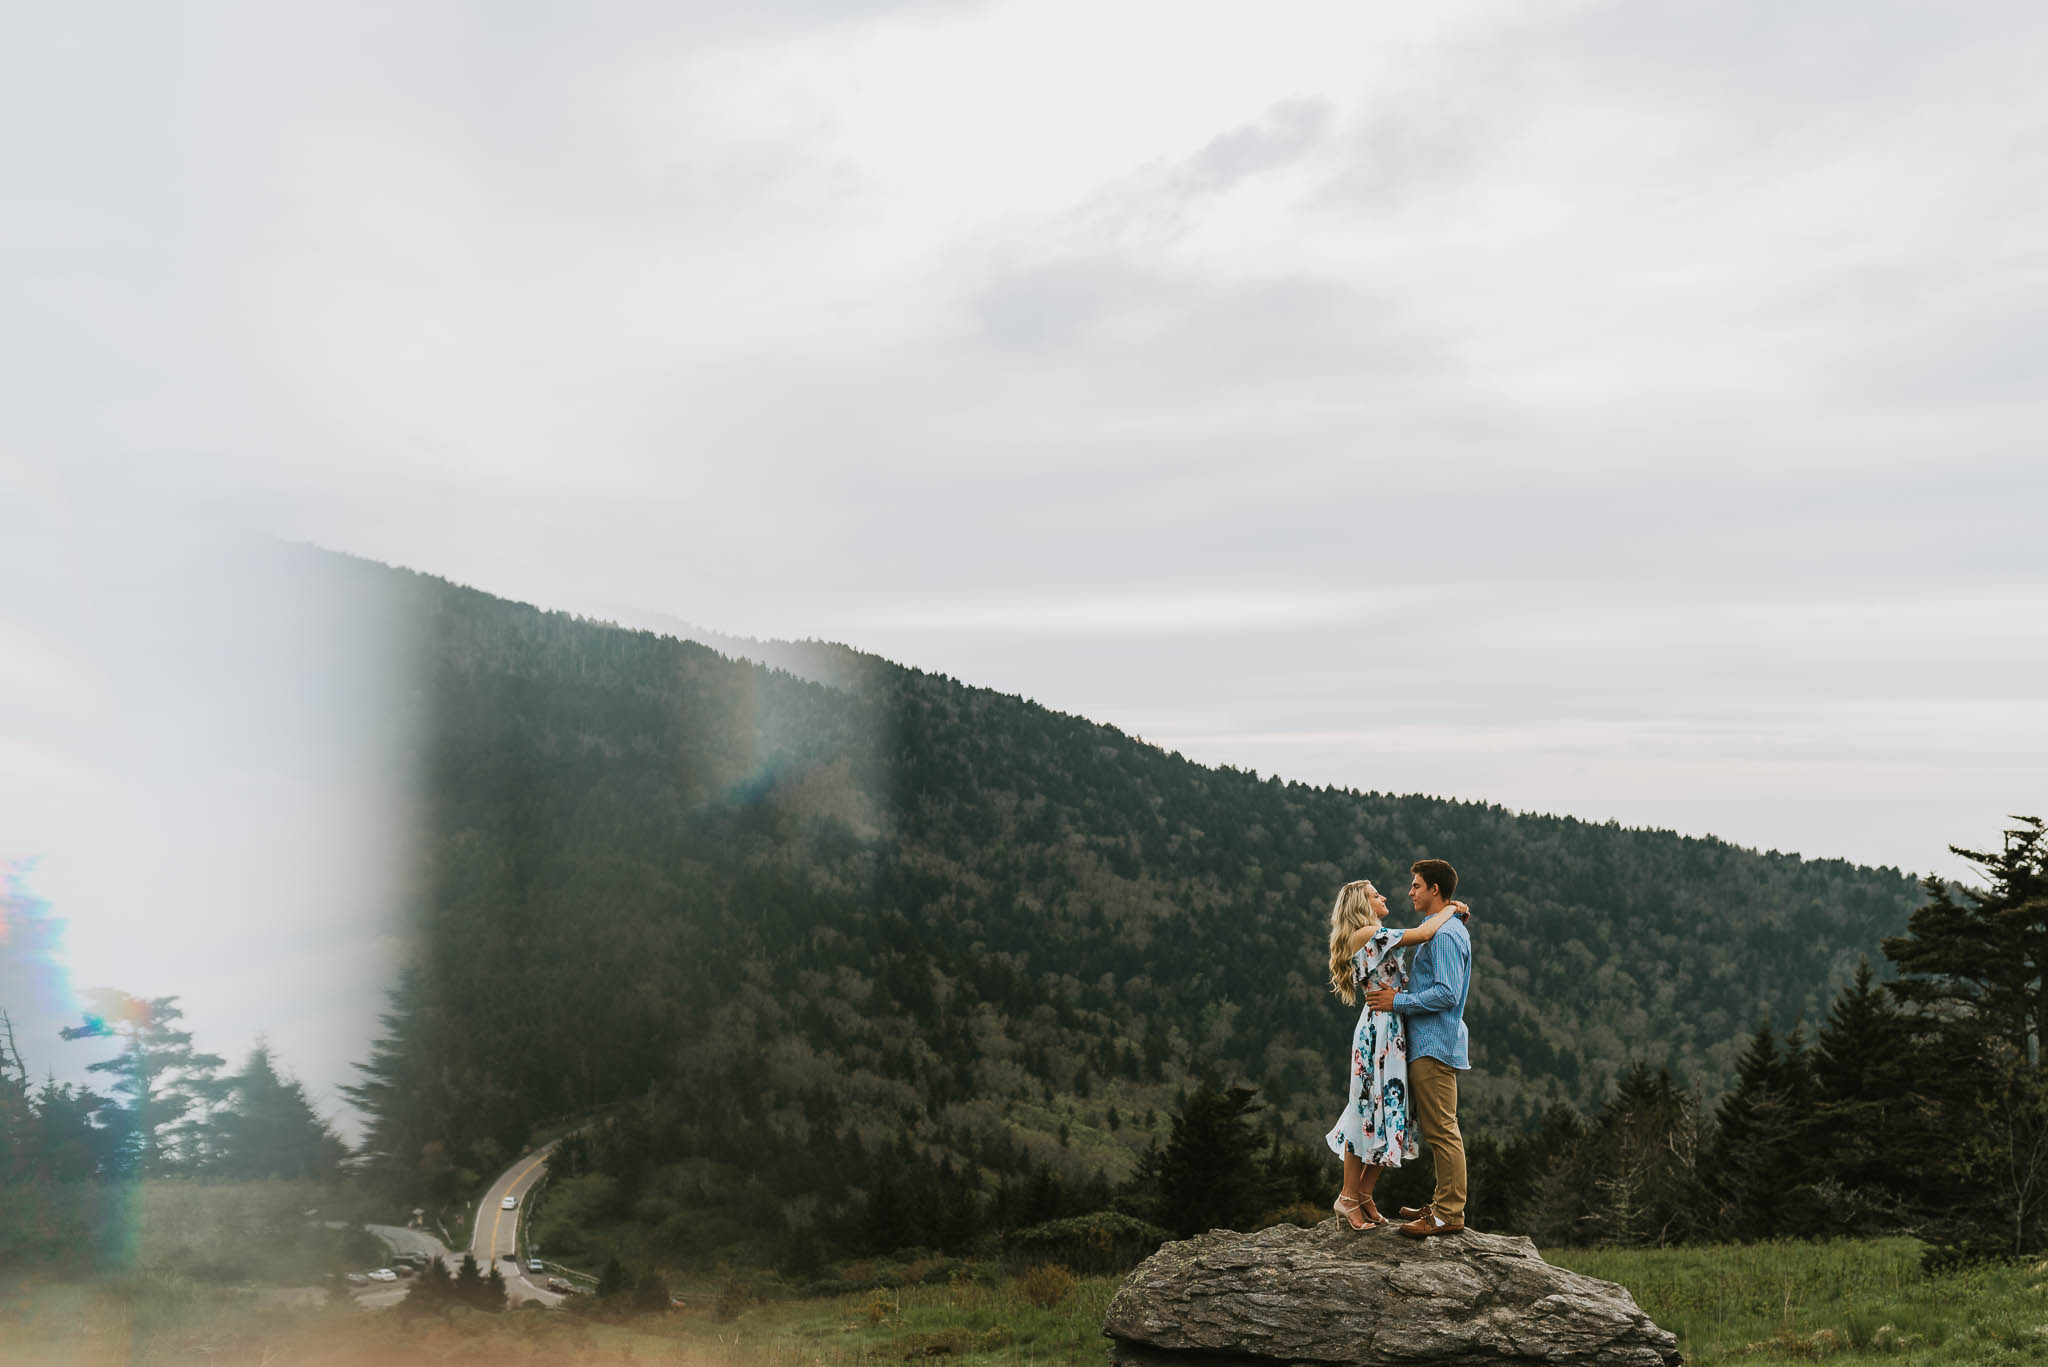 Roan Mountain Engagement Session Northeast Tennessee Wedding Photographers, East Tennessee Wedding Photographers, Kingsport, TN Wedding Photographers, Knoxville, TN Wedding Photographers (1 of 1)-19.jpg